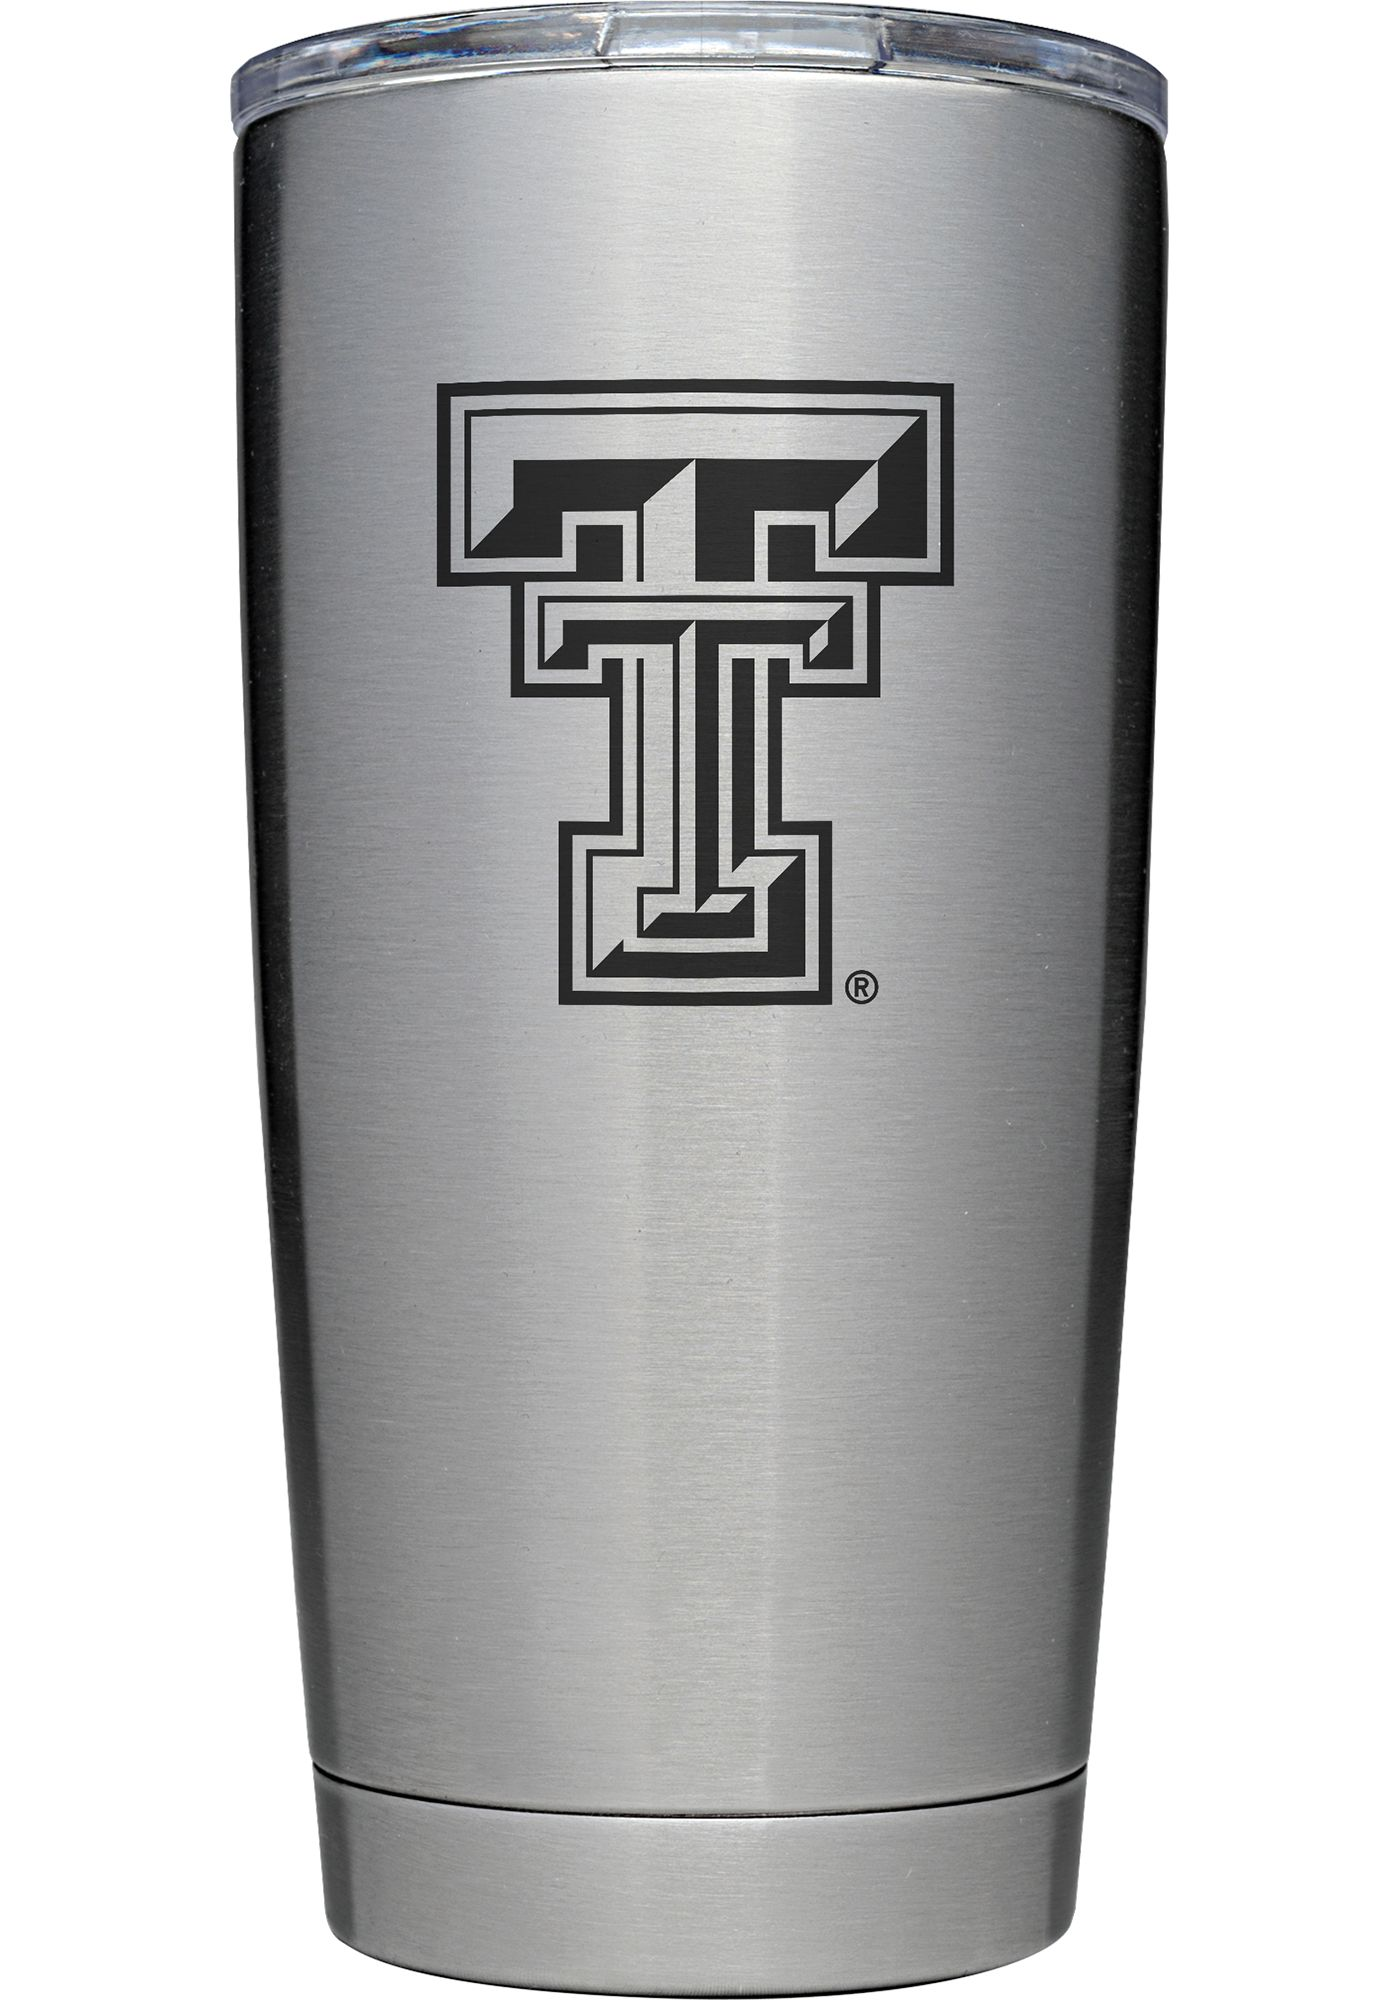 YETI Texas Tech Red Raiders 20 oz. Rambler Tumbler with MagSlider Lid